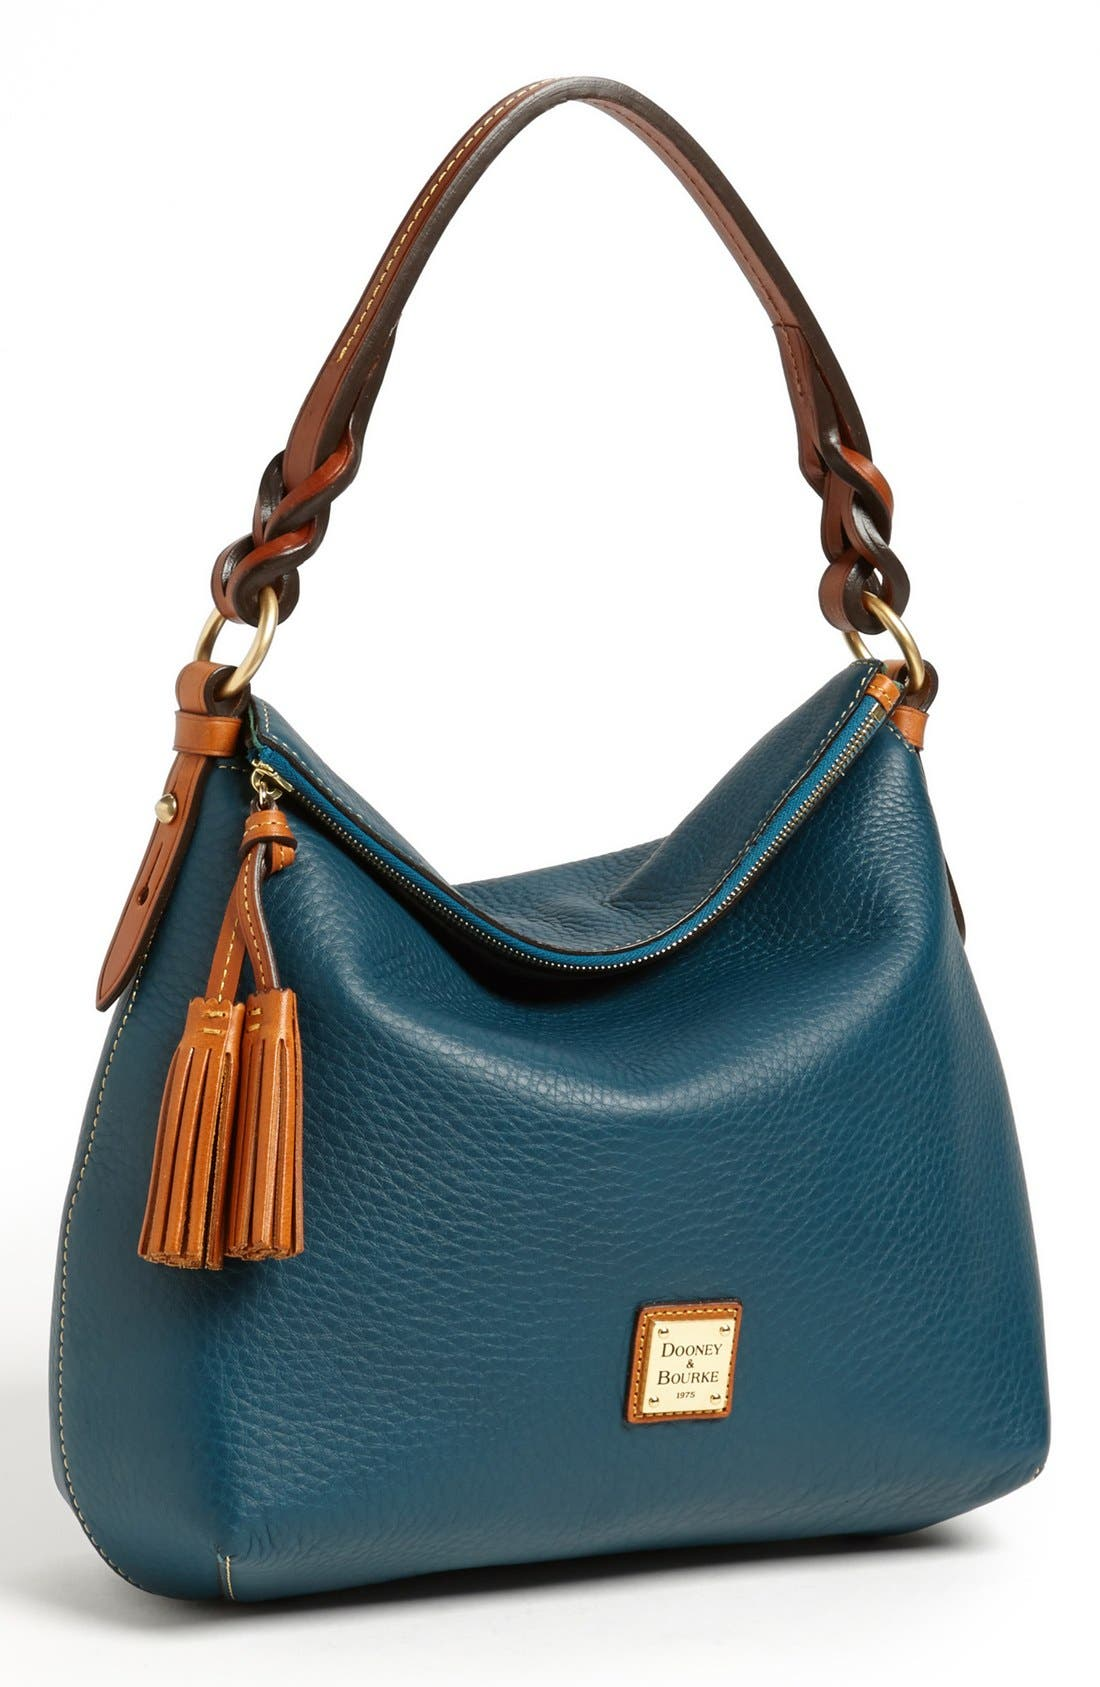 Alternate Image 1 Selected - Dooney & Bourke Leather Hobo